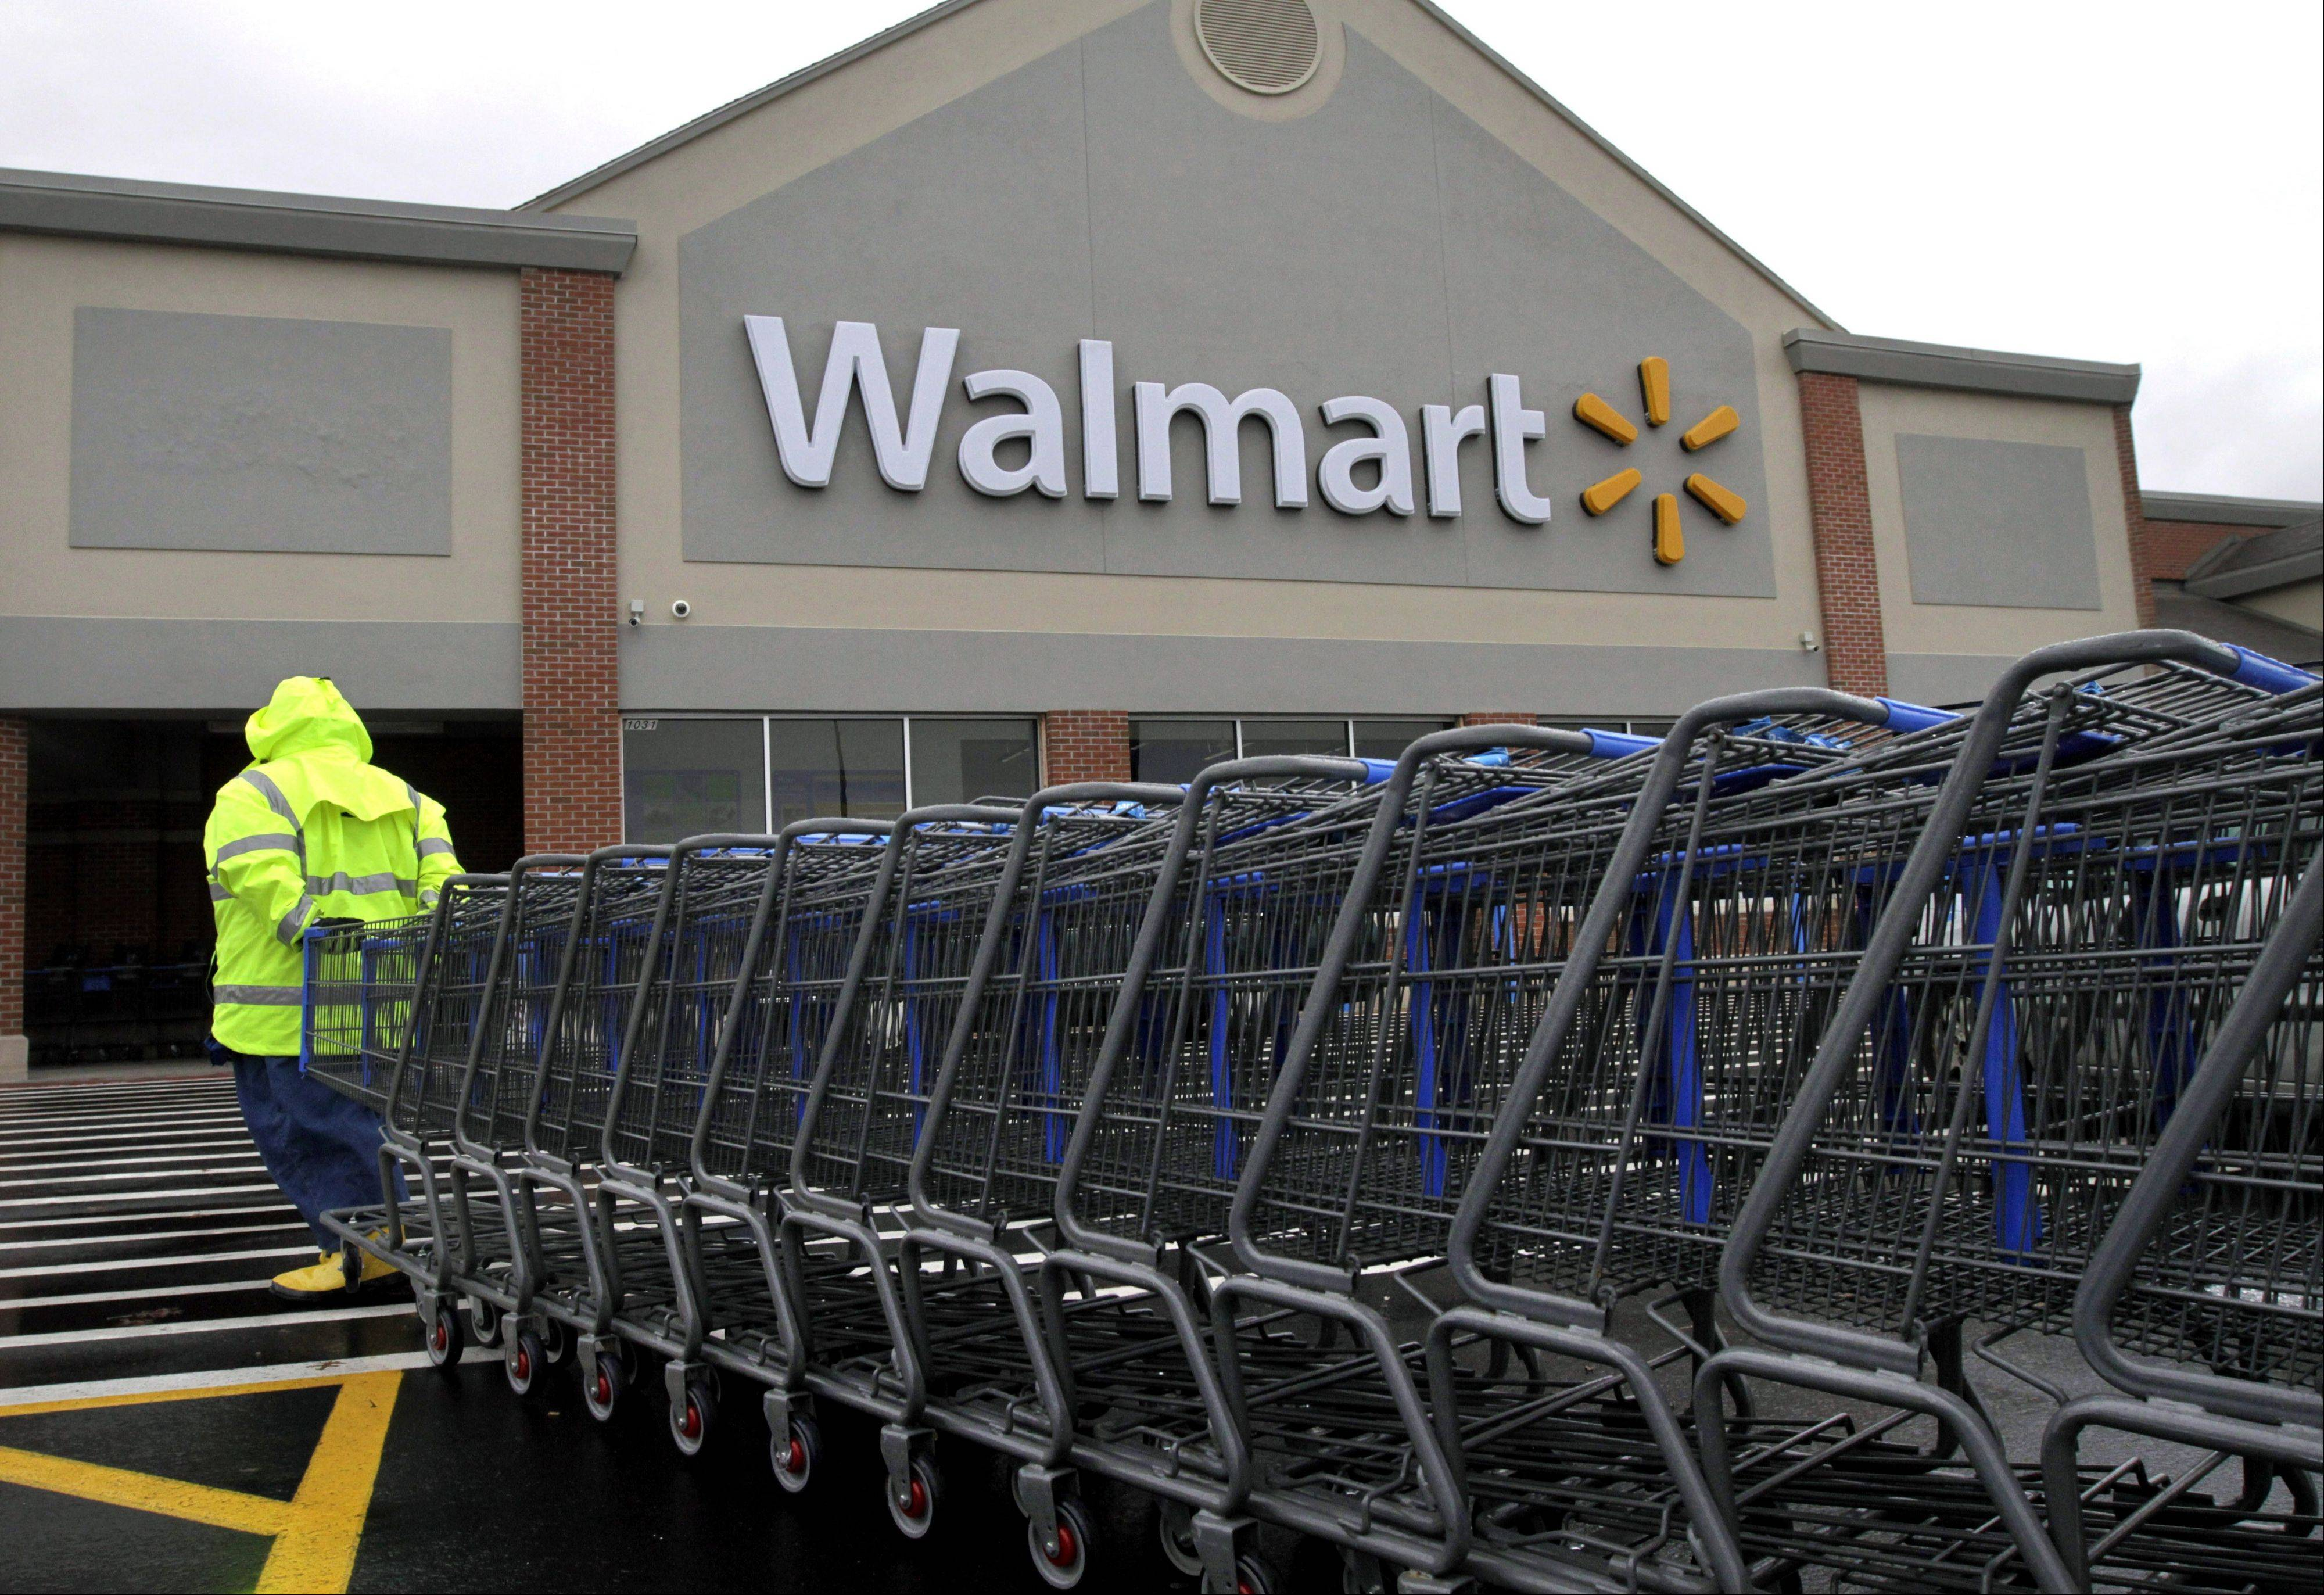 The National Labor Relations Board says Wal-Mart illegally fired, disciplined or threatened more than 60 employees in 14 states including Illinois for participating in legally protected activities to complain about wages and working conditions at the nation�s largest retailer.